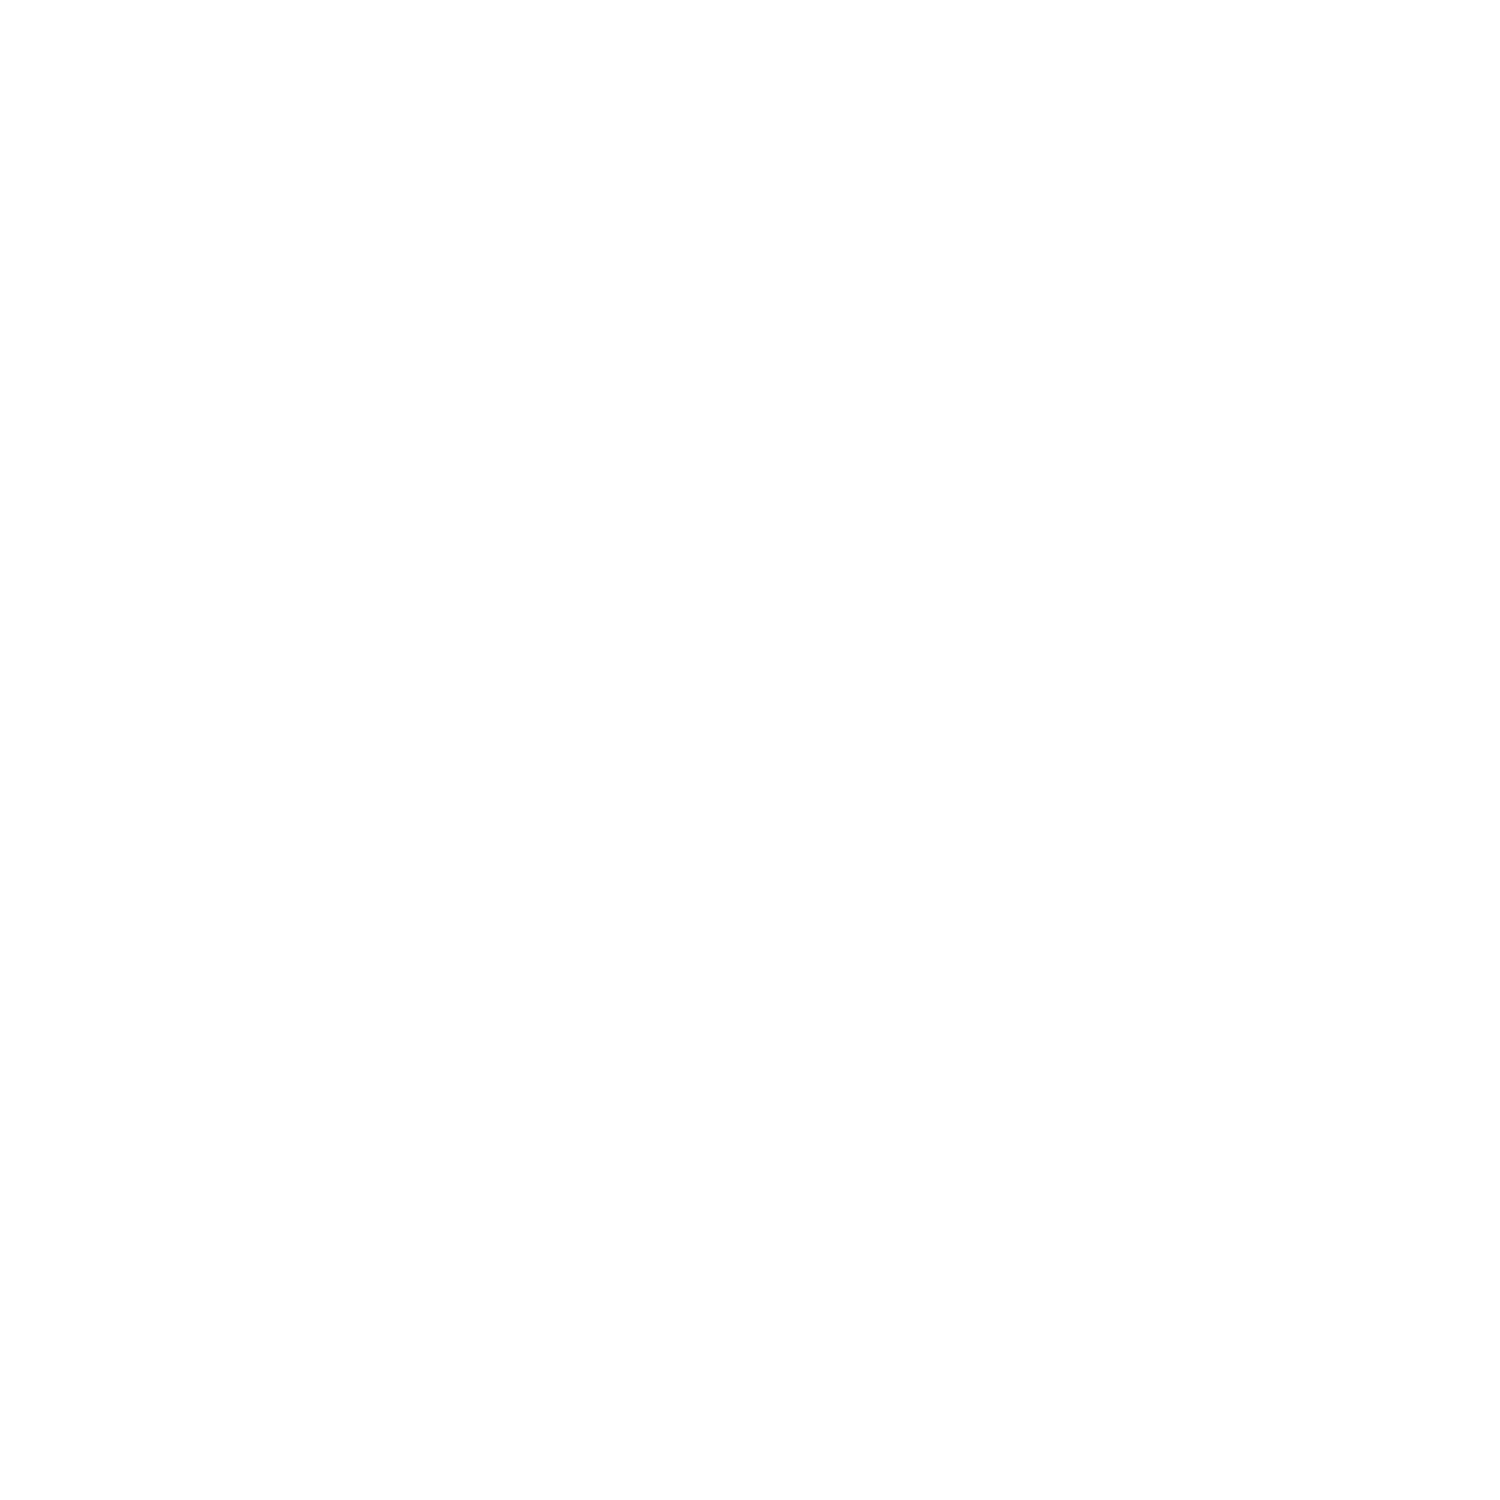 A LUXURY TRAVELLER